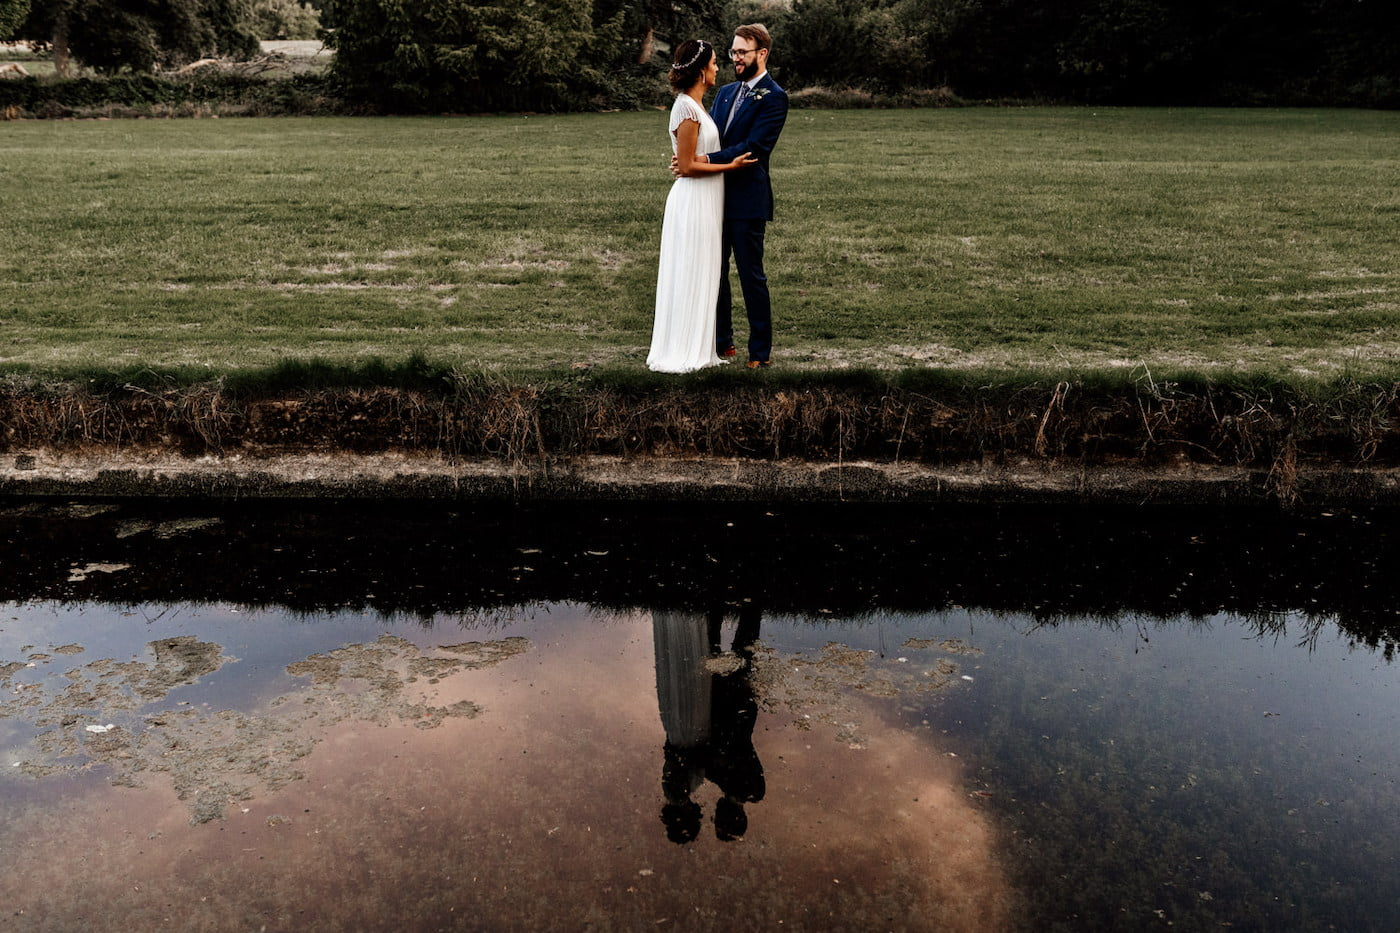 reflection photo of bride and groom